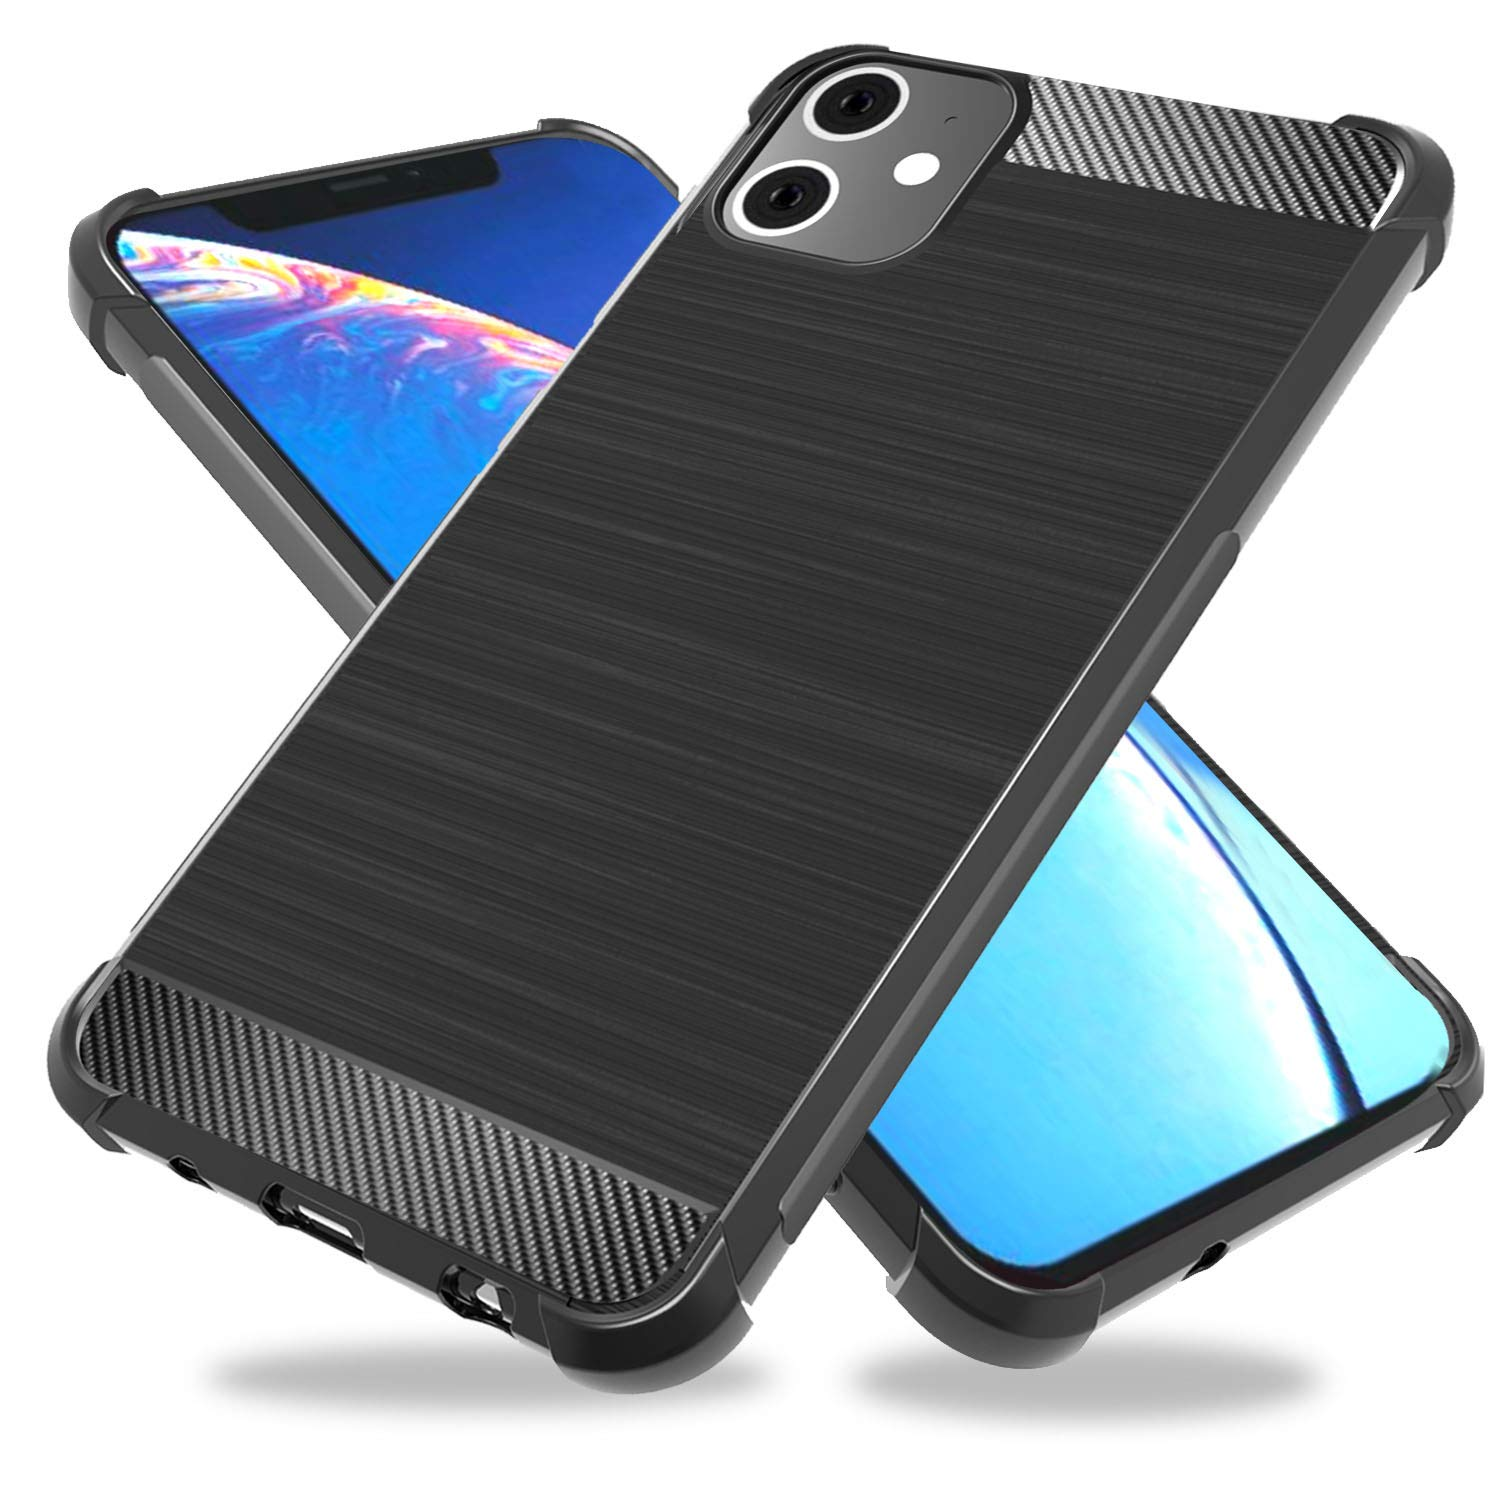 ZeKing iPhone 11 Pro 5.8'' Case, Brushed Texture Soft TPU Carbon Fiber Shock Resistant Phone case Anti-Scratch Flexible Full-Body Protective Cover for iPhone 11 Pro 5.8''(2019)(Black)